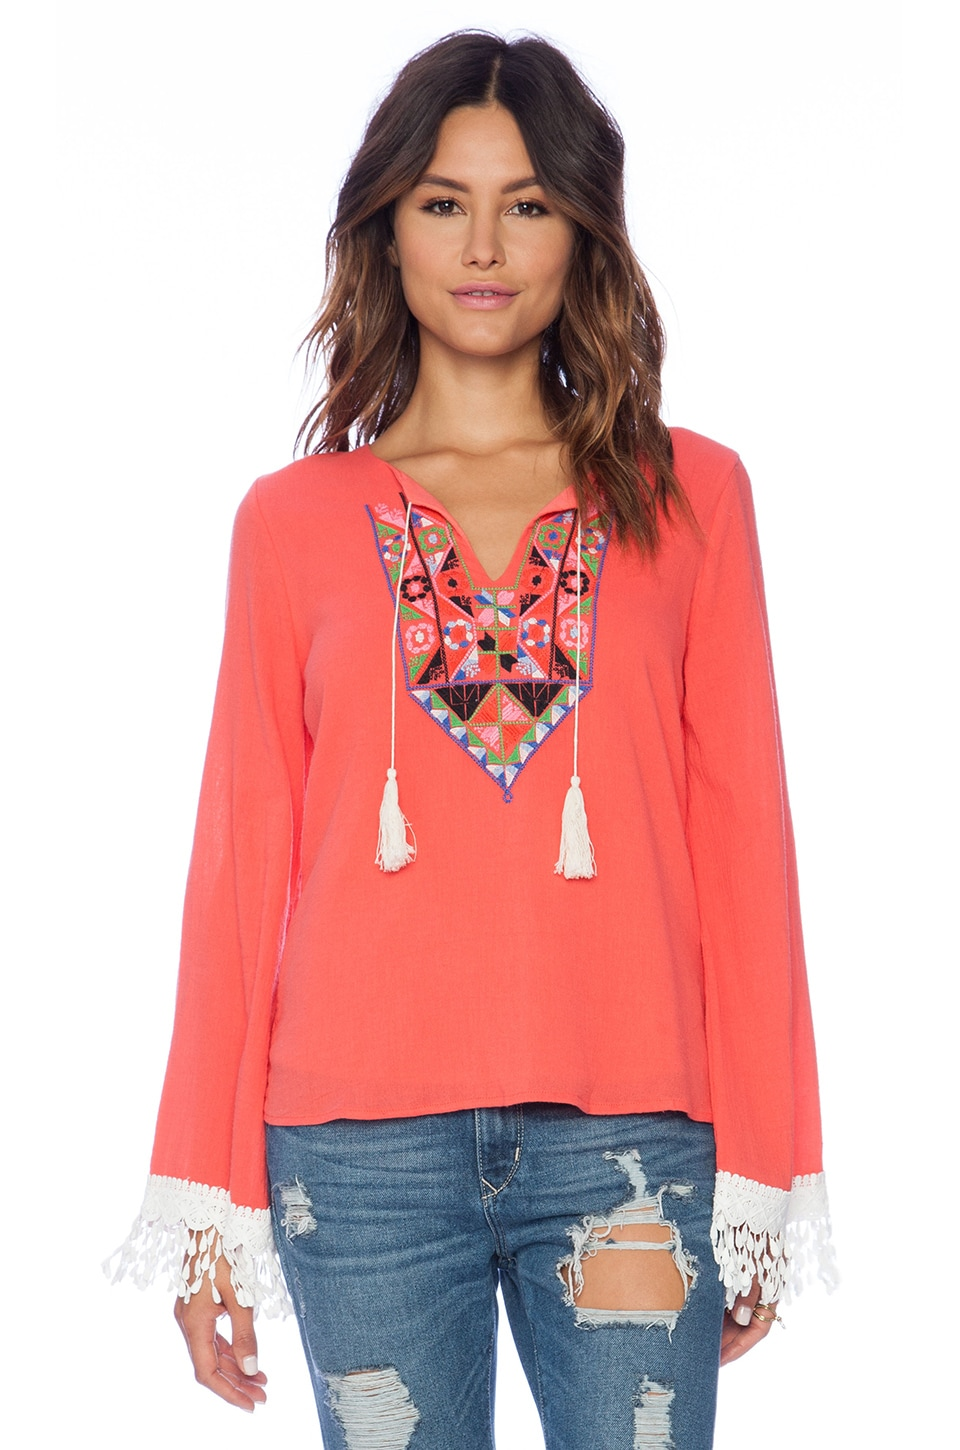 VAVA by Joy Han Teresa Long Sleeve Top in Coral